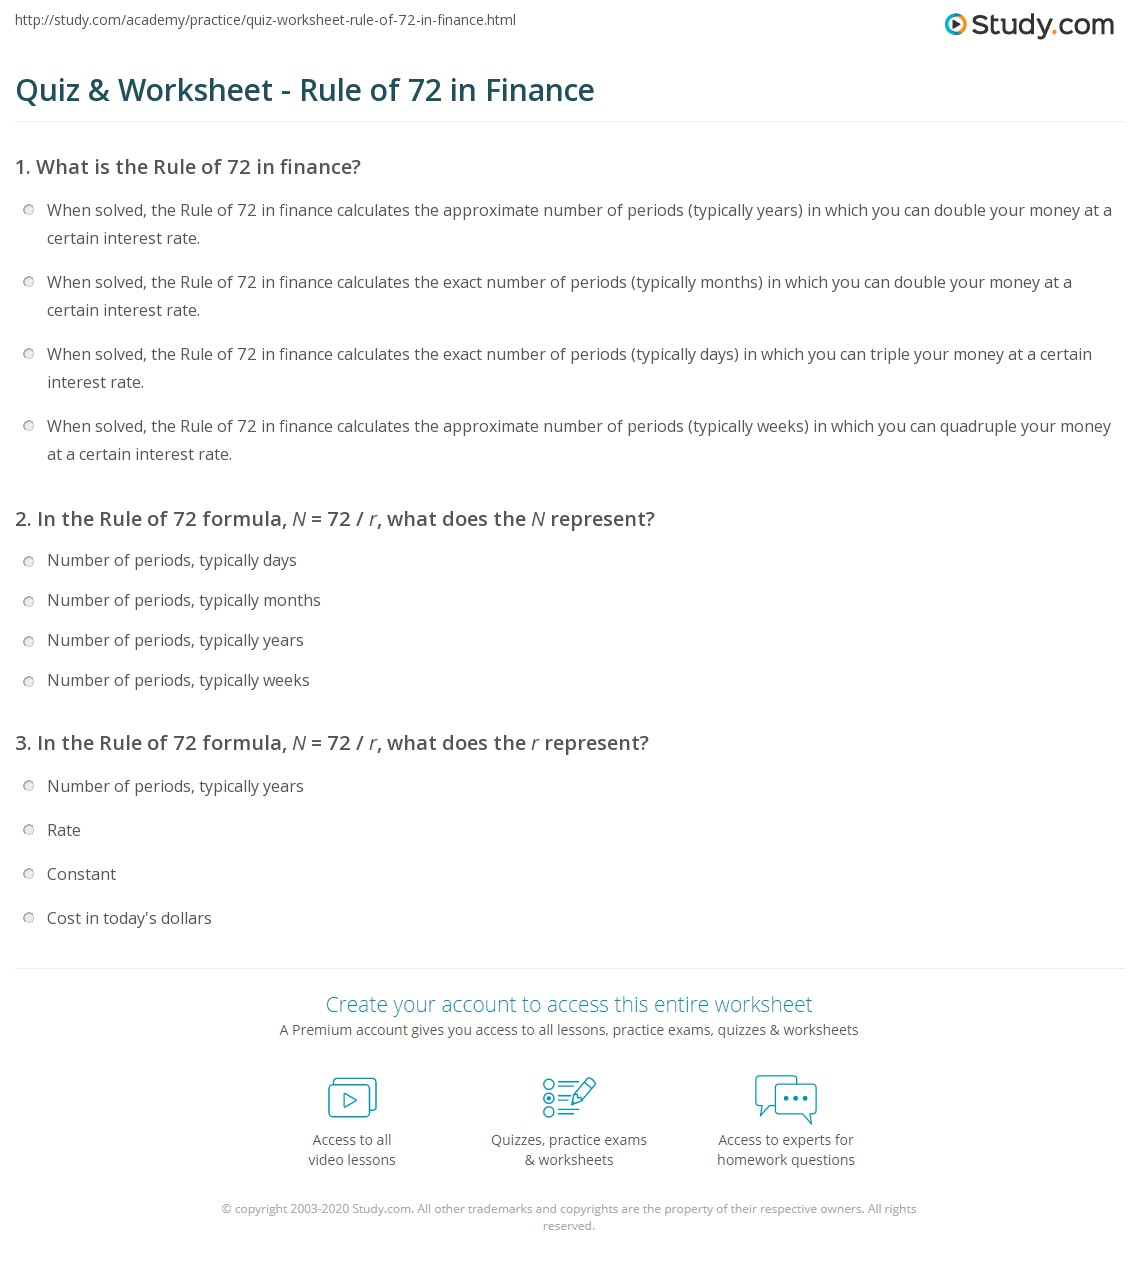 Worksheets Rule Of 72 Worksheet quiz worksheet rule of 72 in finance study com print what is the definition formula worksheet